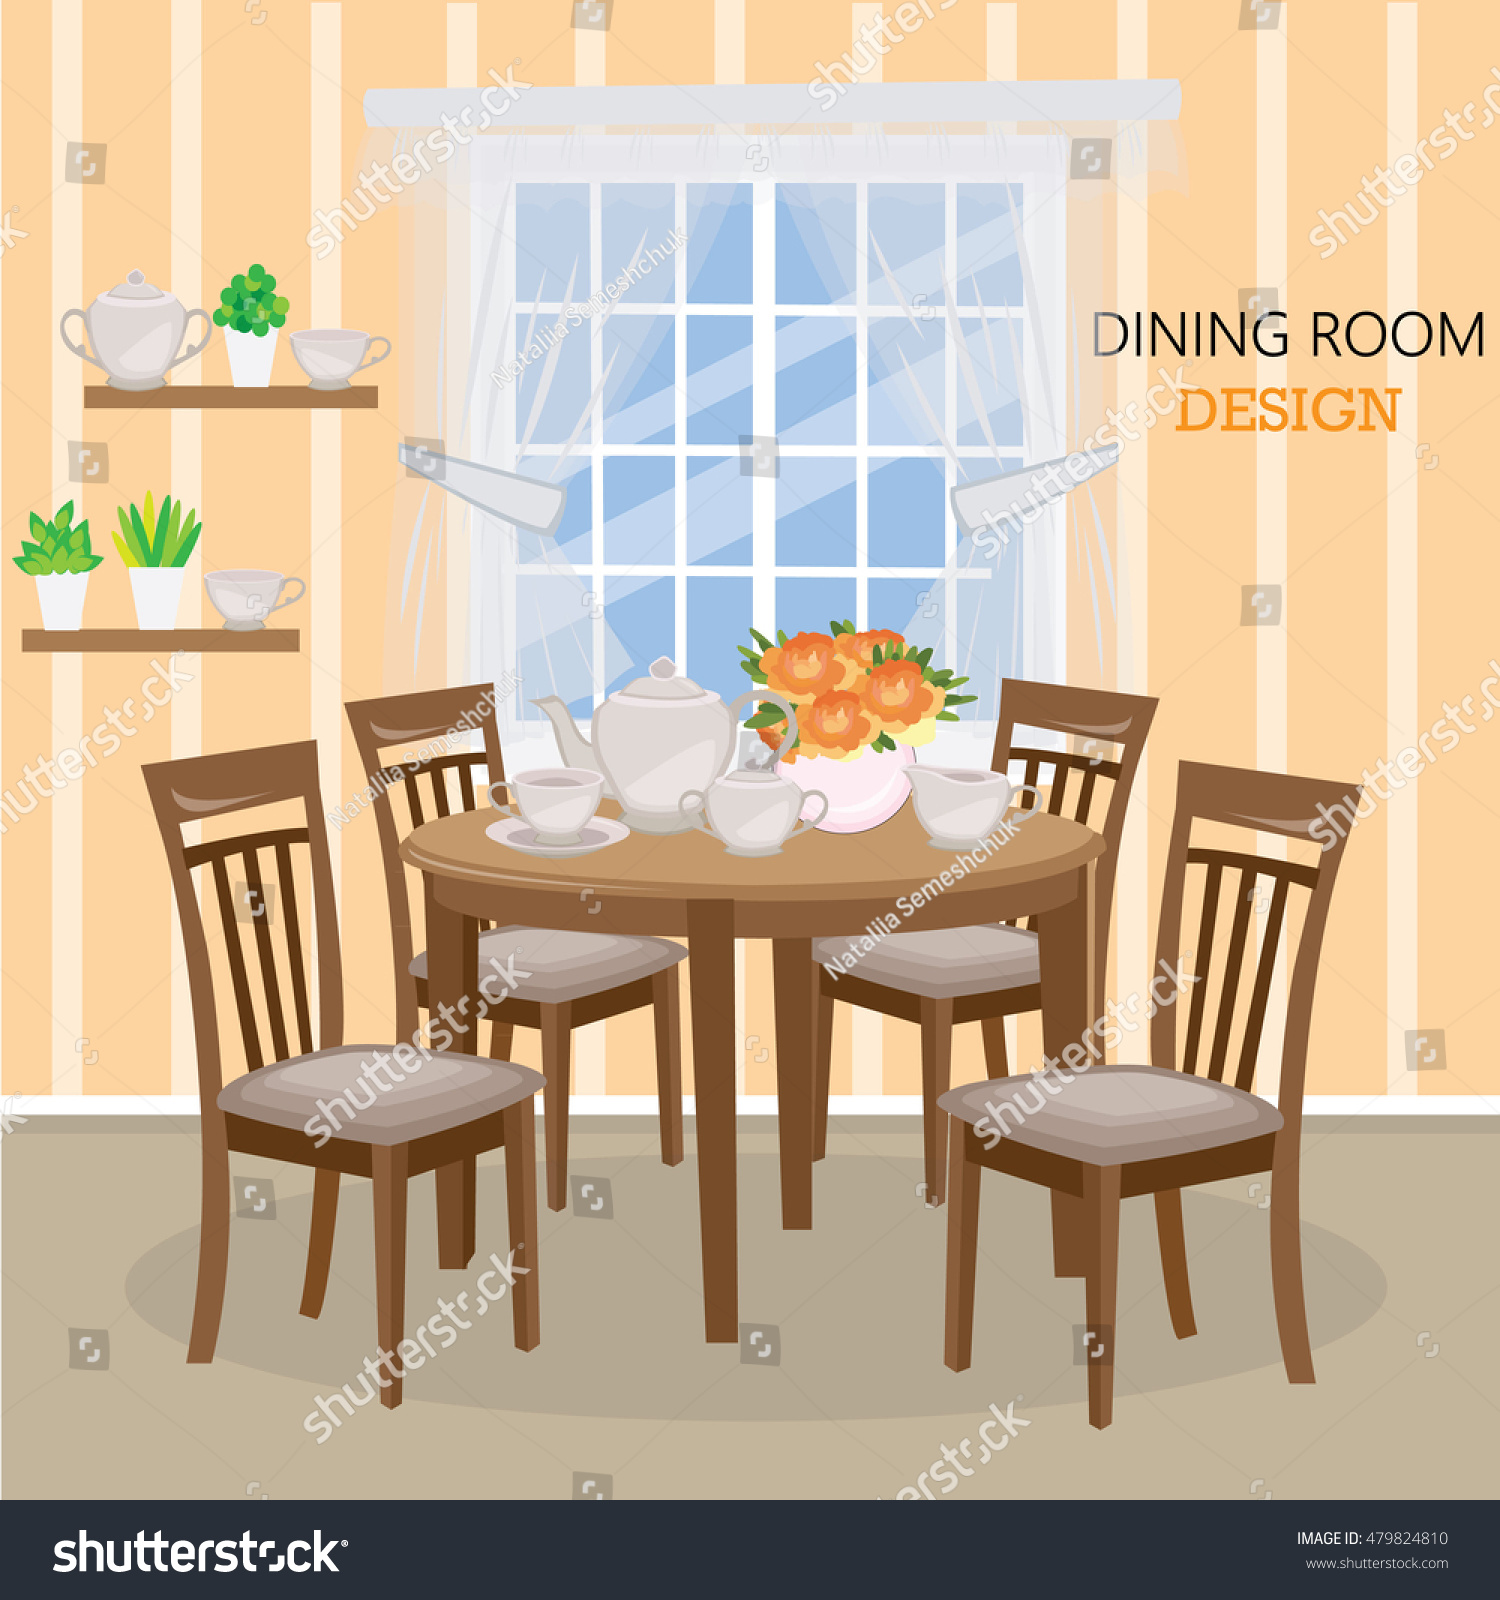 Dining Room With A Big Window, Vase With Roses And Tea Set. Flat Style